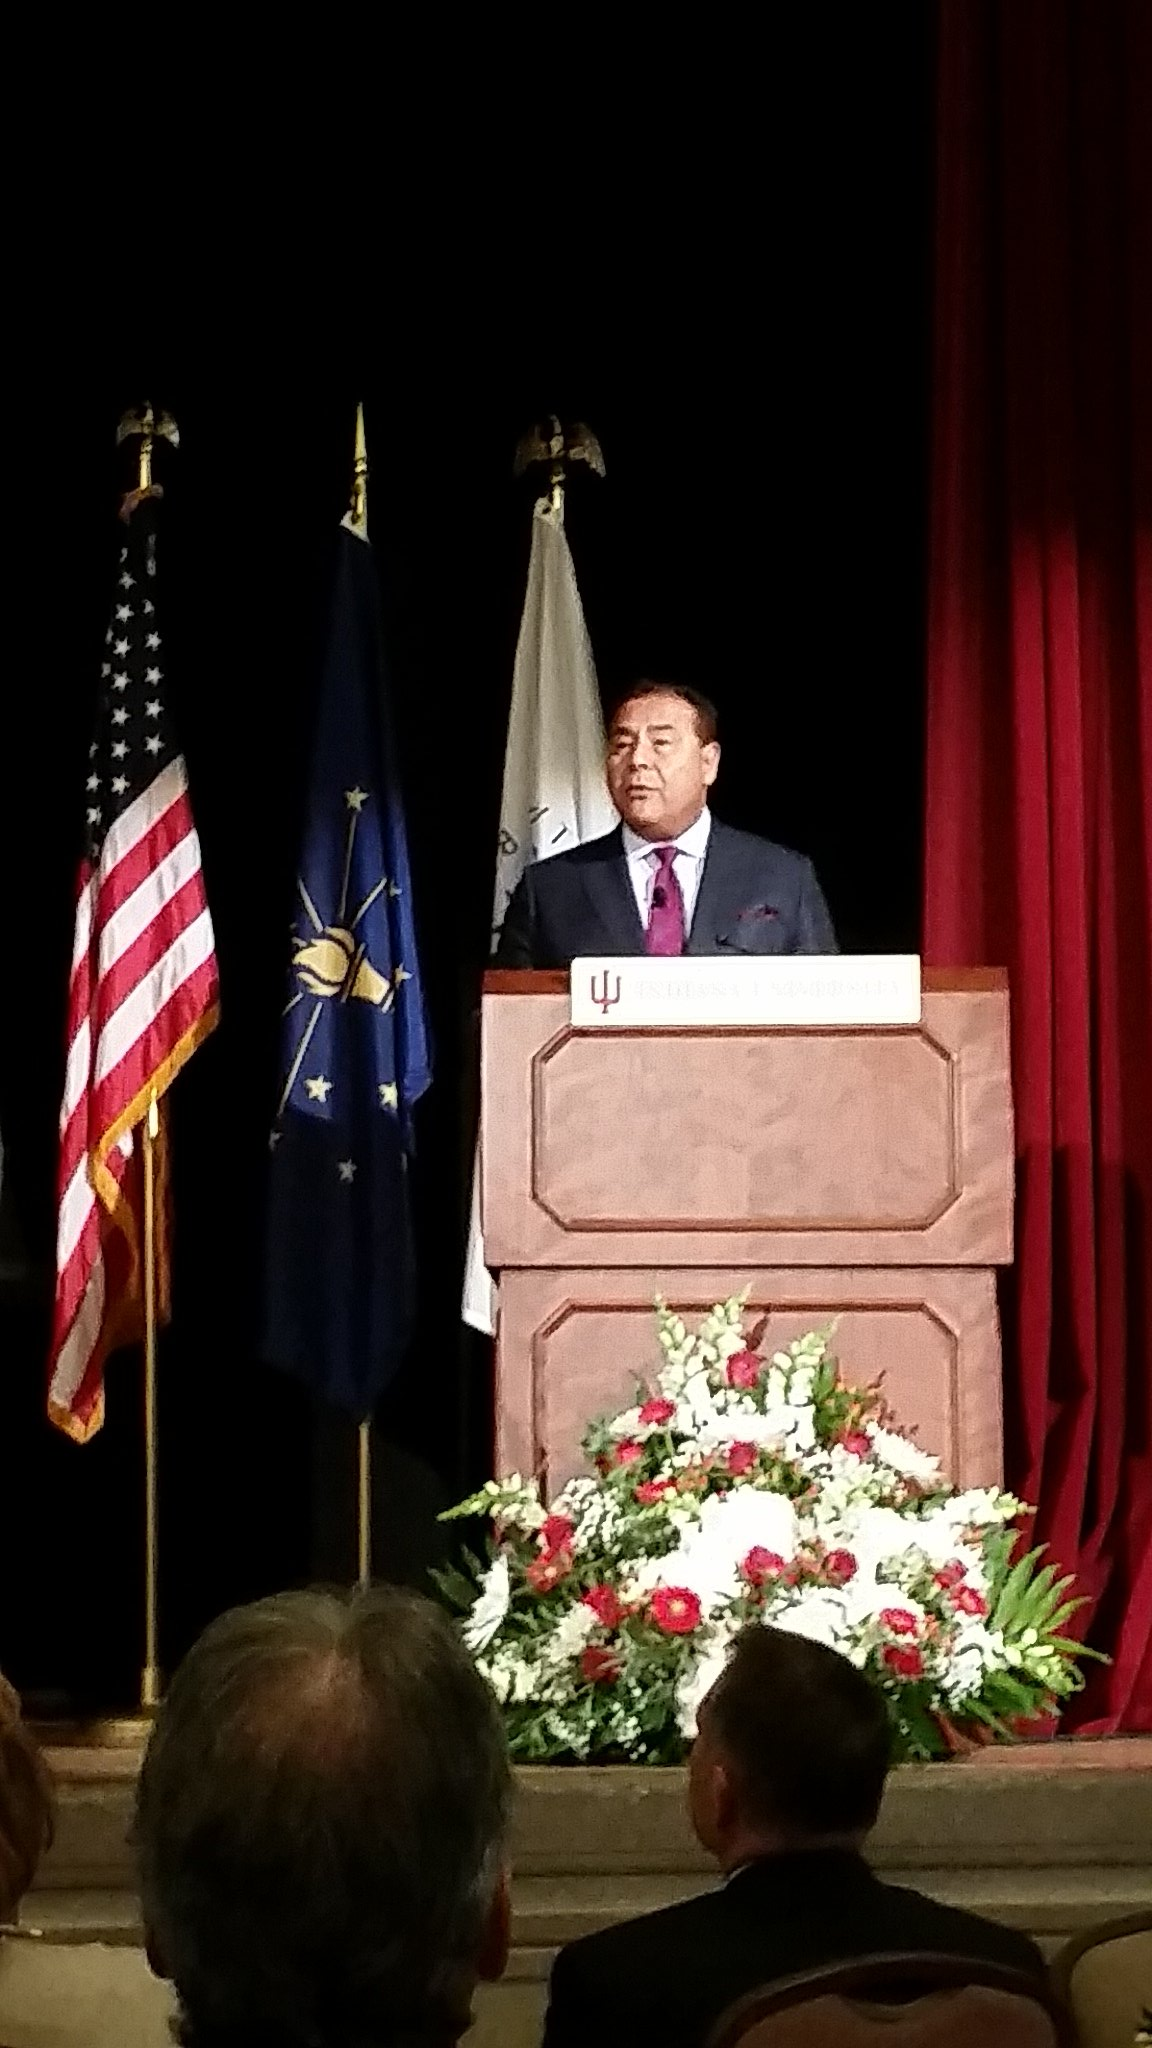 @JohnQABC Quinones speaks about how the civil rights movement made his career possible #mlkday https://t.co/GnHjH75FtH